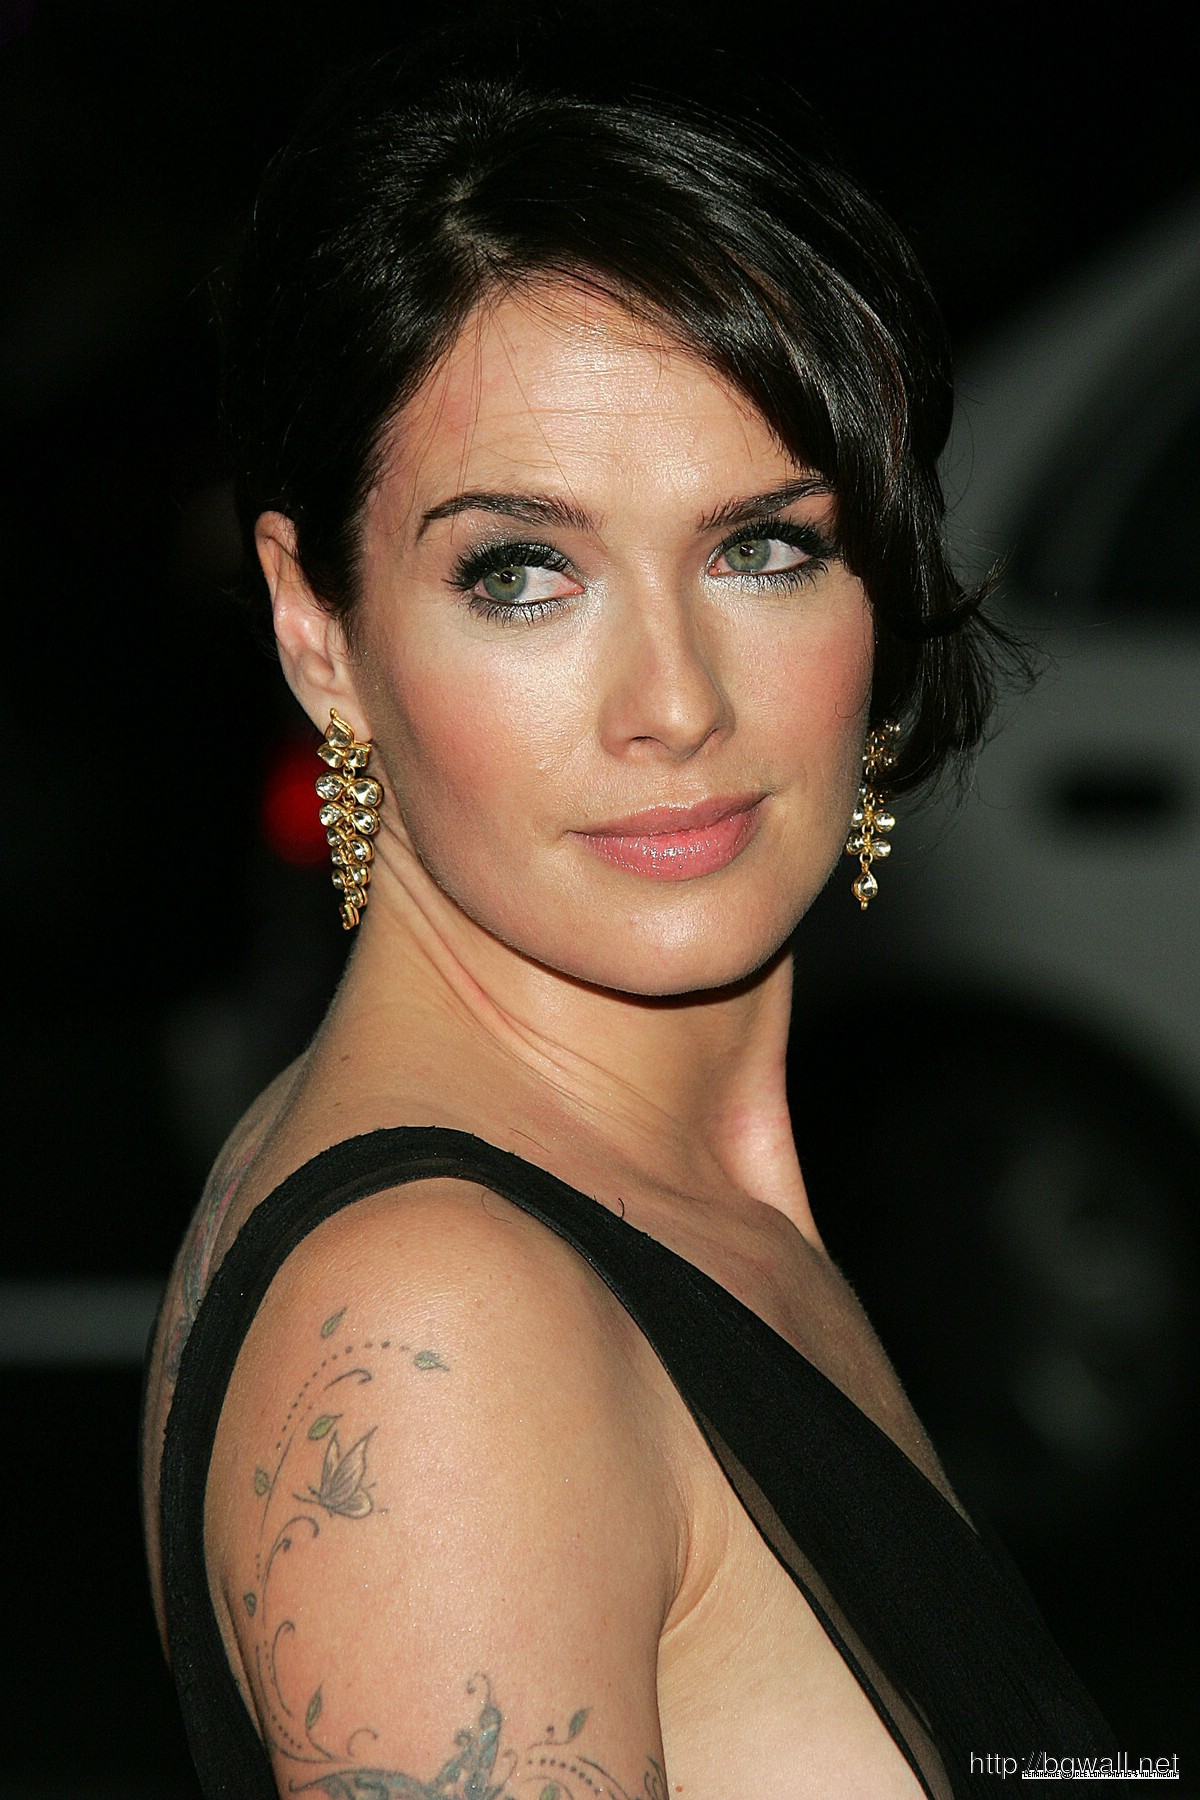 Lena Headey Wallpaper Lena Headey Wallpaper Lena Headey Images Lena